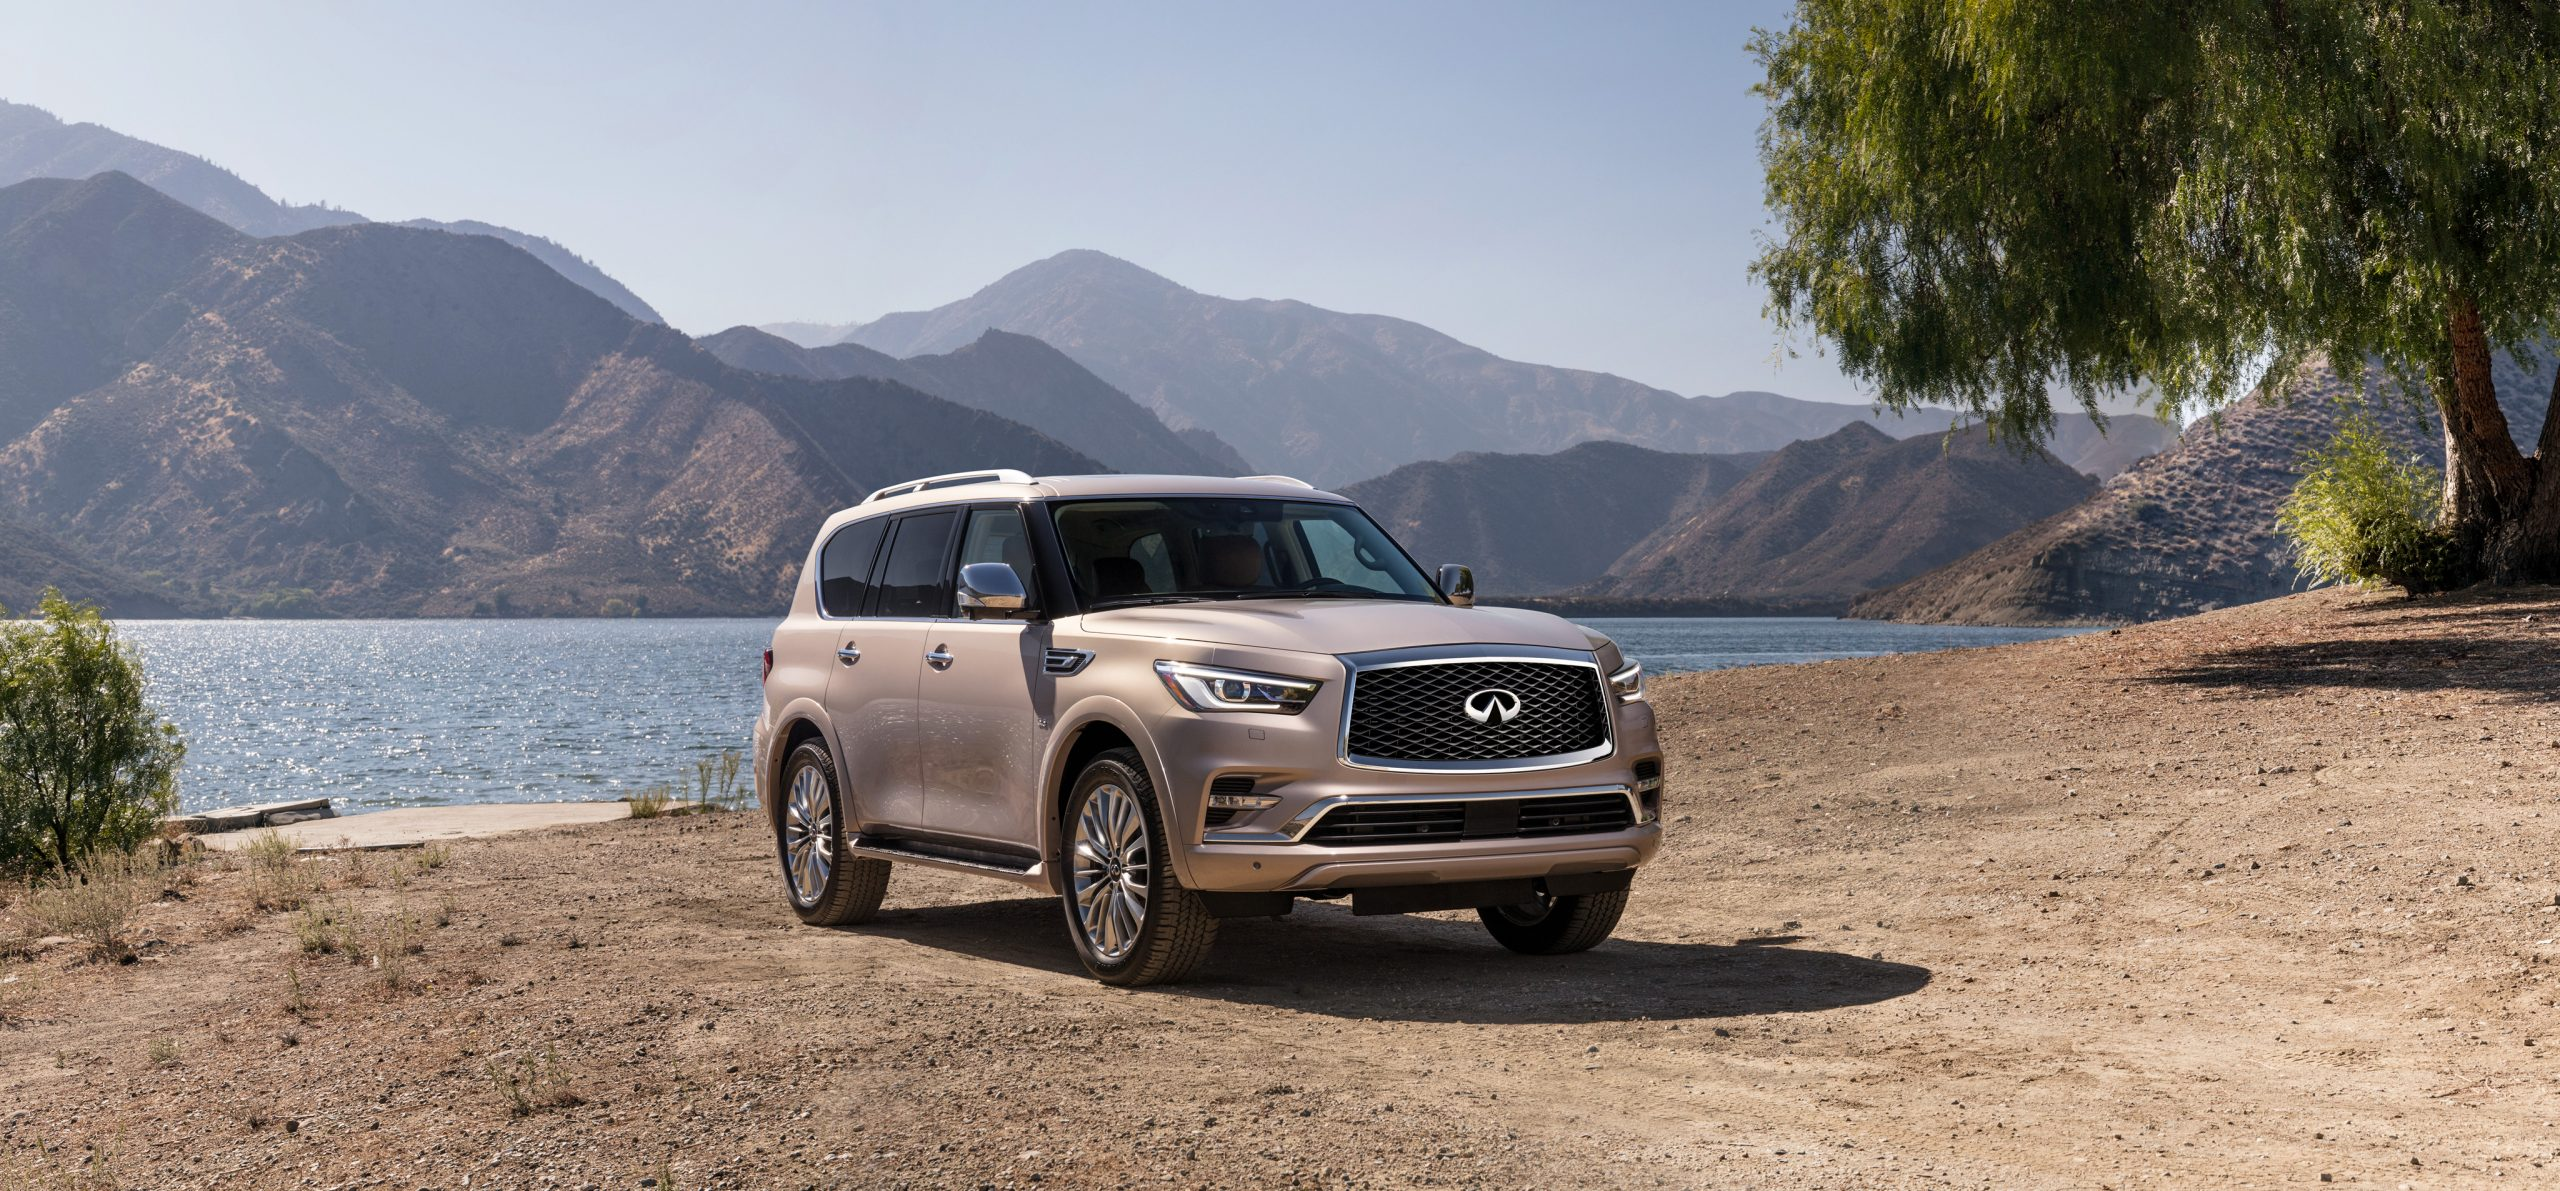 Infiniti QX80 Wallpapers